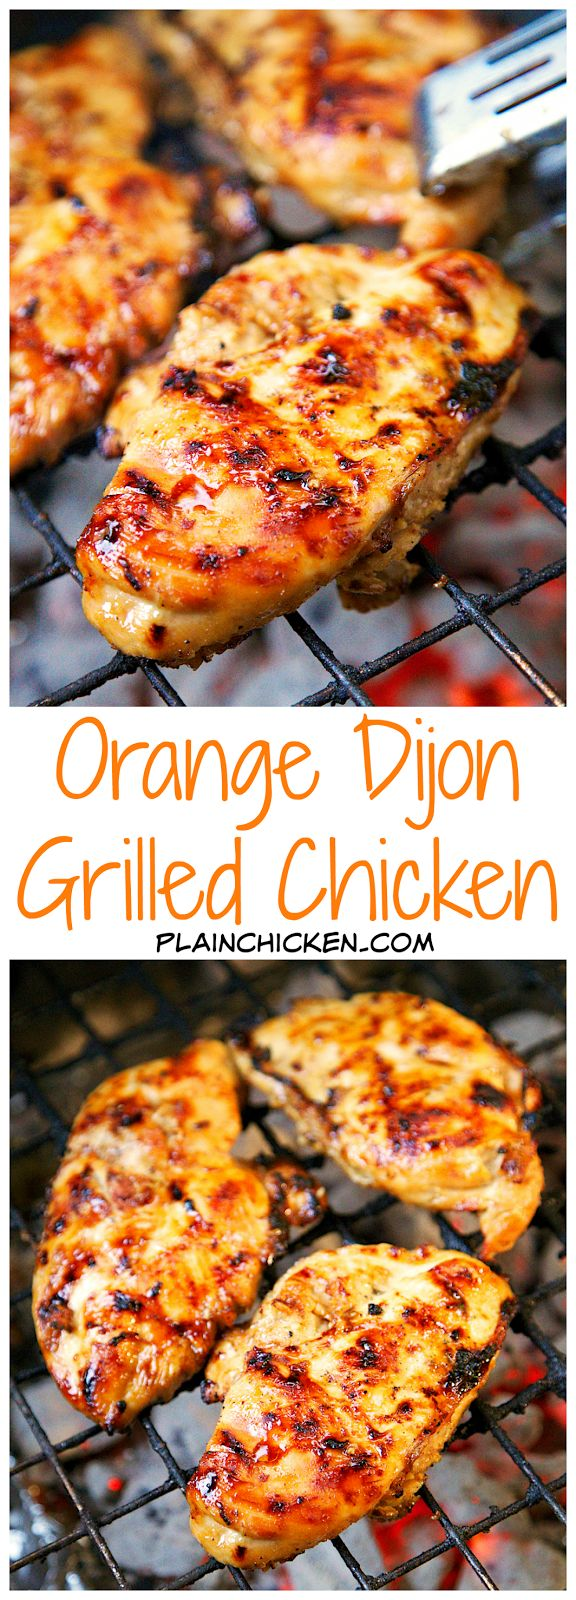 Orange Dijon Grilled Chicken Recipe - chicken marinated in fresh orange juice, brown sugar, dijon mustard, garlic and apple cider vinegar - fantastic flavor combination! So versatile! Great on its own or in quesadillas, tacos, or on top of a salad.